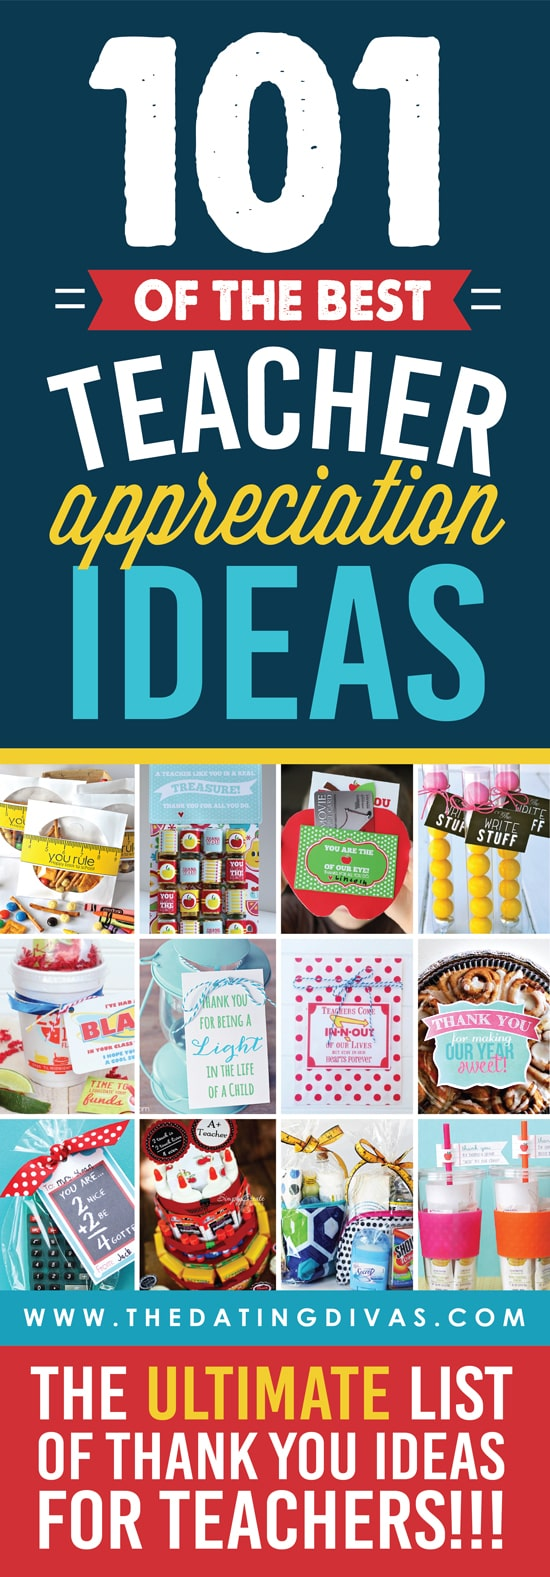 101 Teacher Appreciation Ideas